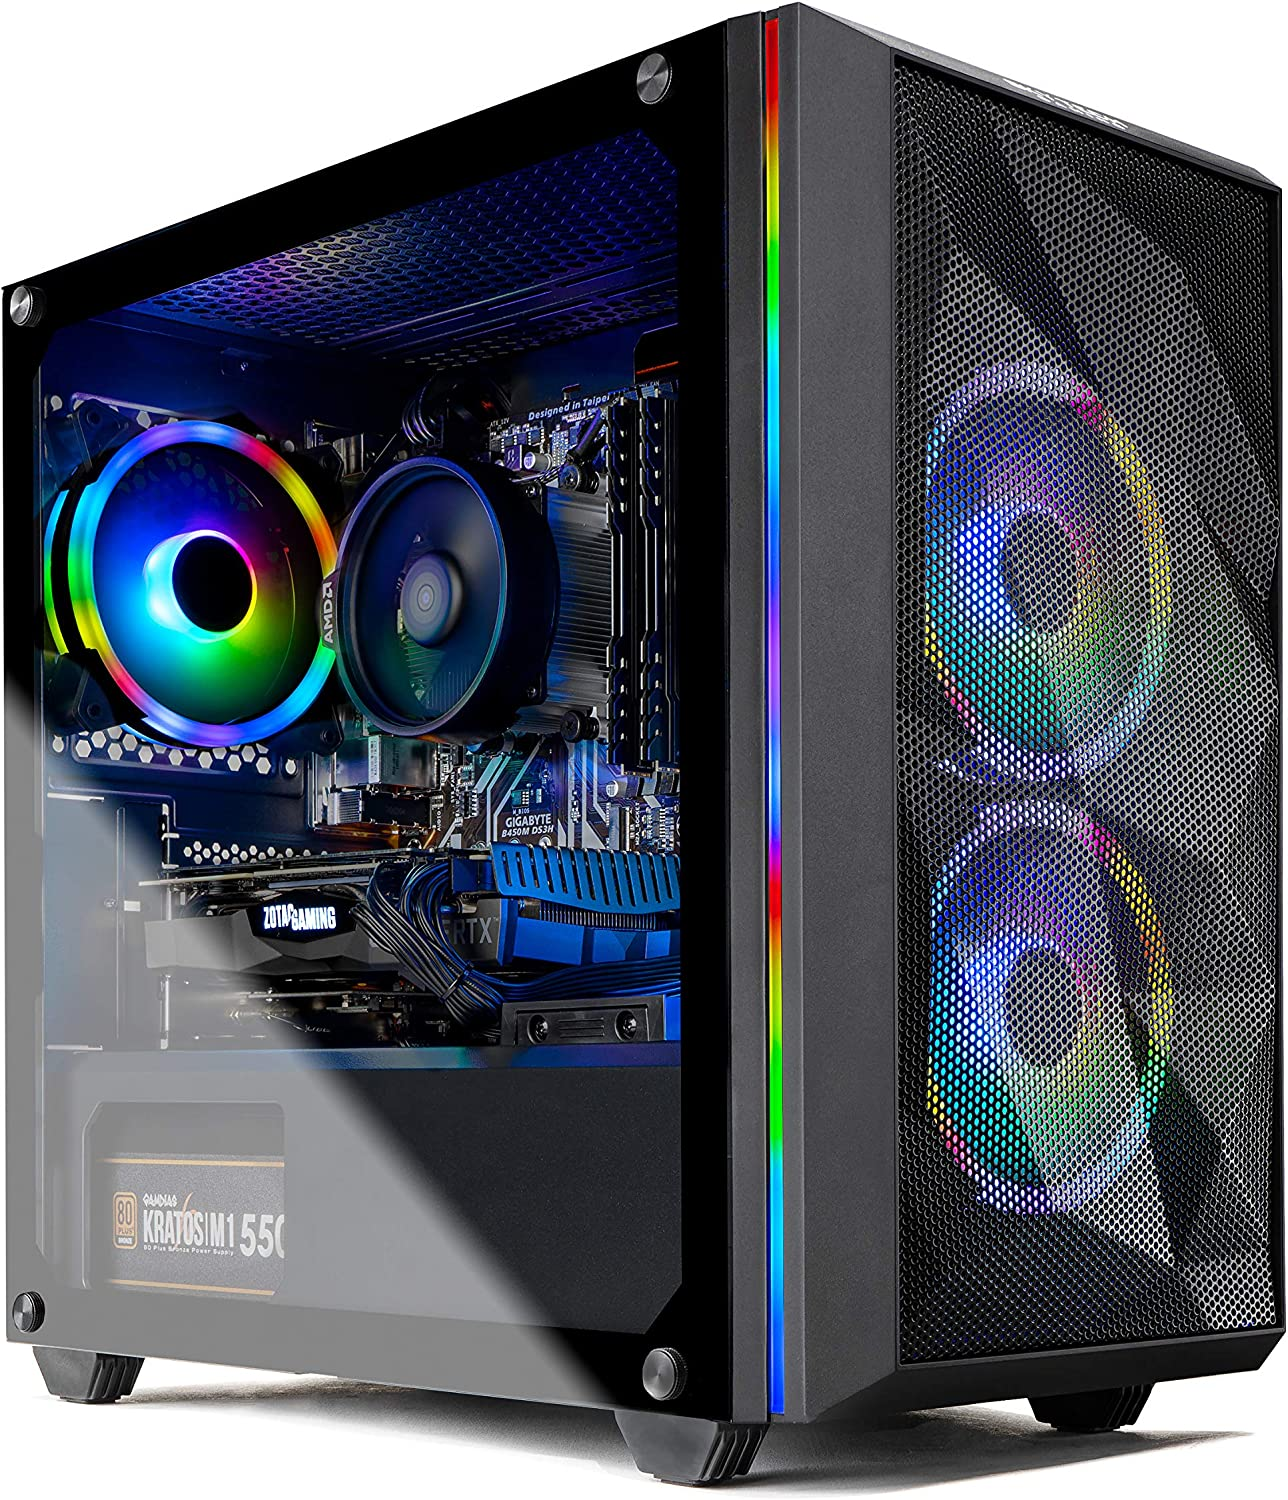 Skytech Chronos Gaming PC Desktop - AMD Ryzen 3 3100, NVIDIA GTX 1650 Super 4GB, 8GB DDR4, 500GB SSD, A320 Motherboard, 550 Watt Bronze